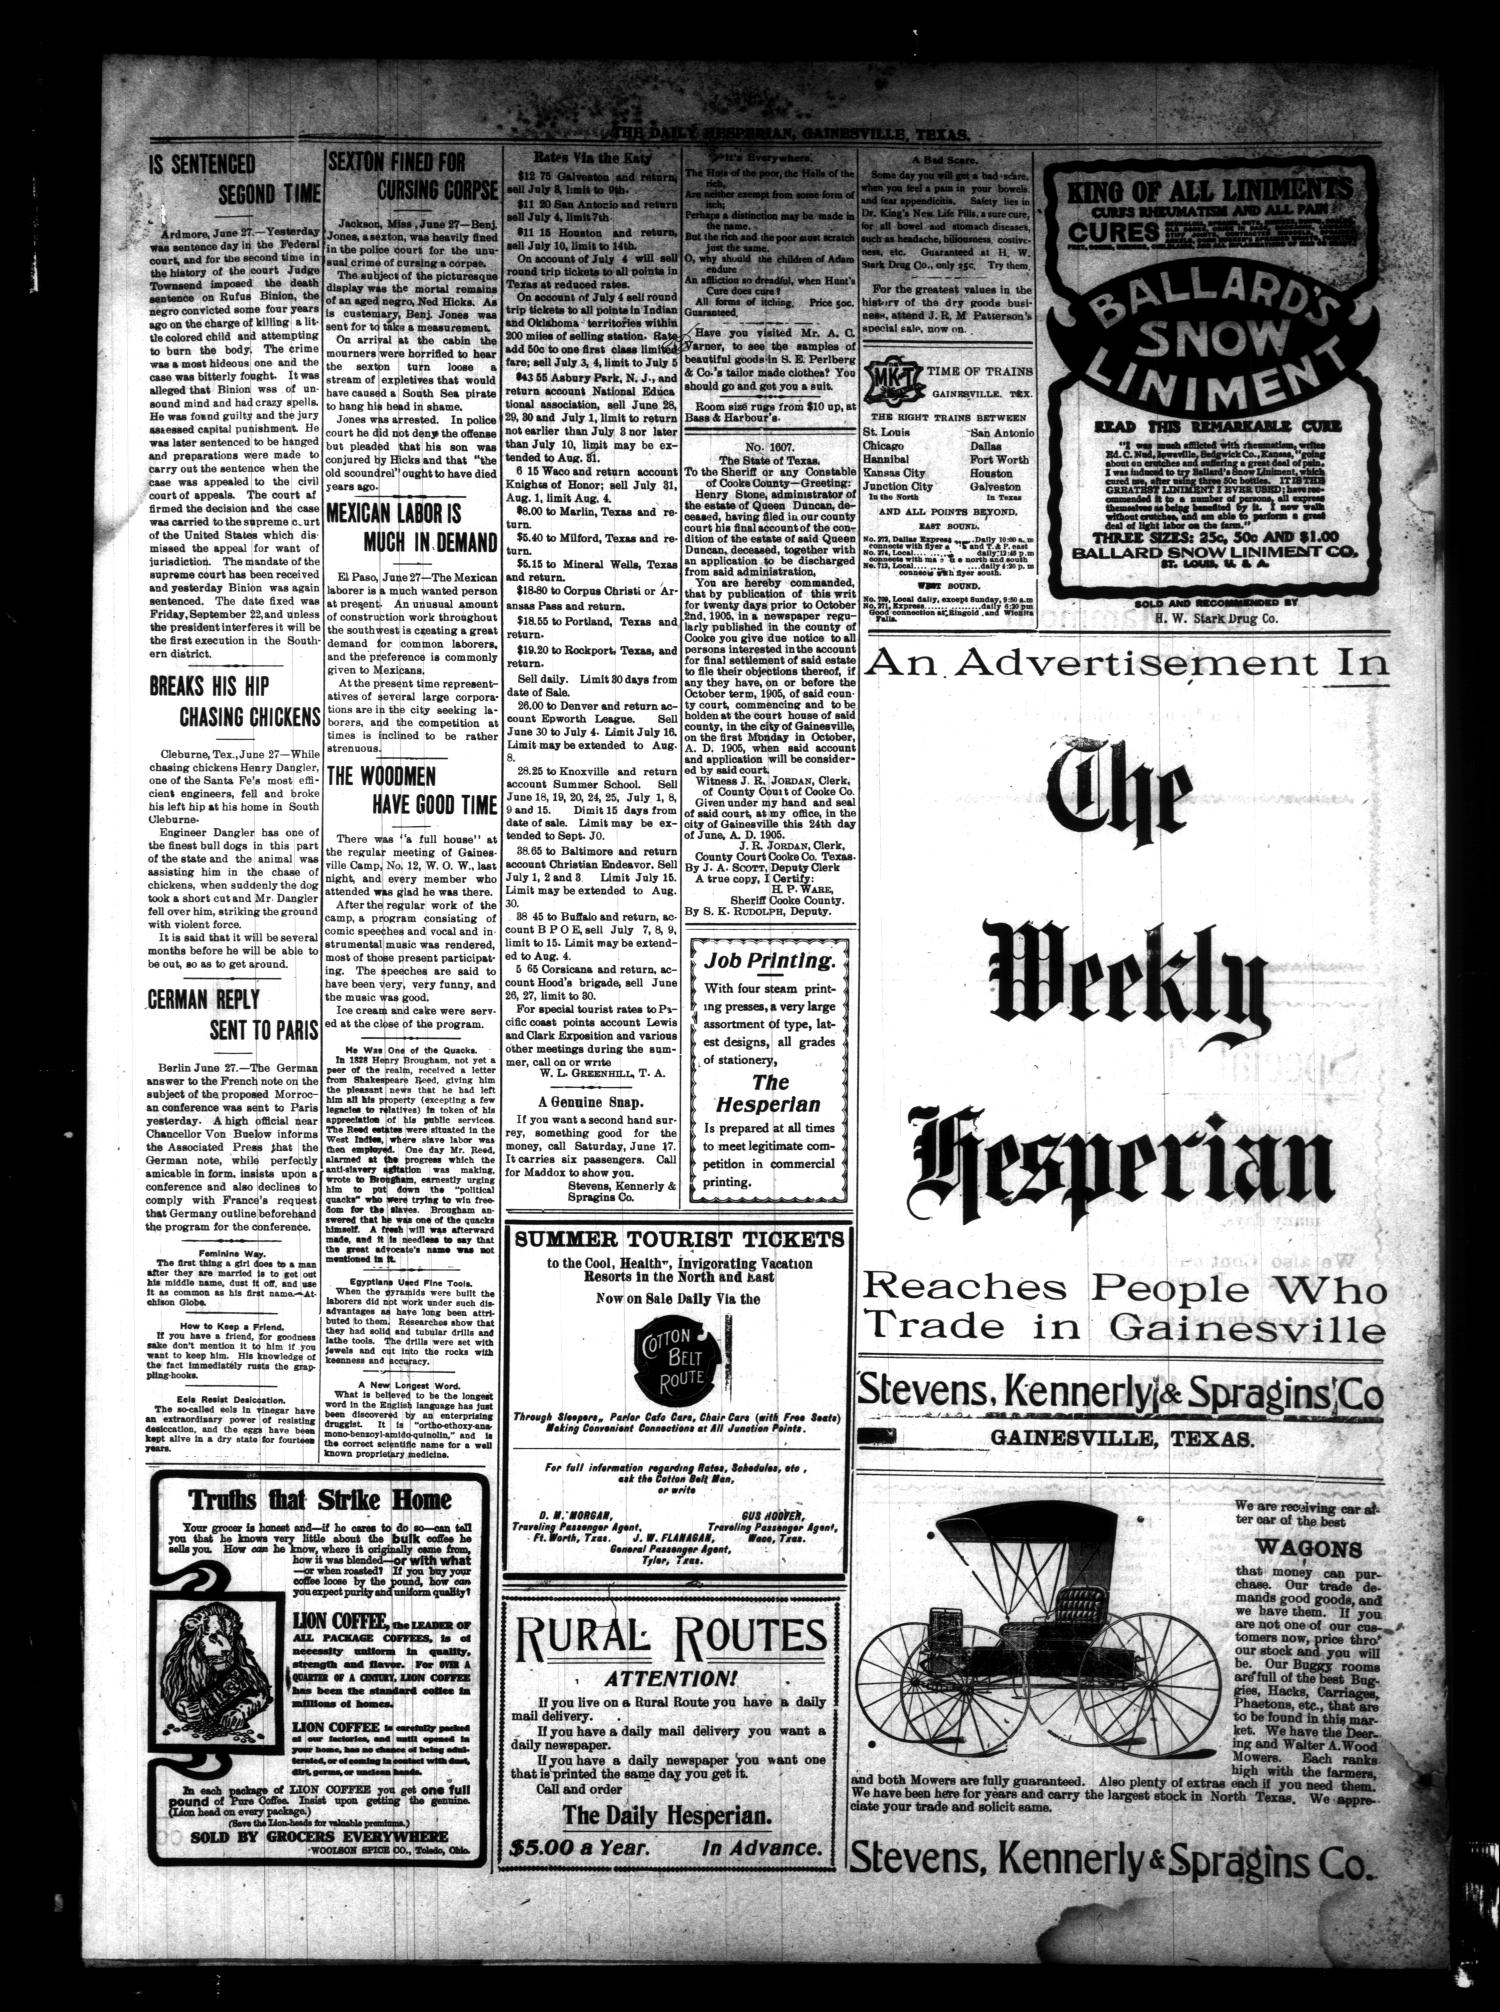 The Daily Hesperian (Gainesville, Tex.), Vol. 27, No. 90, Ed. 1 Wednesday, June 28, 1905                                                                                                      [Sequence #]: 4 of 4